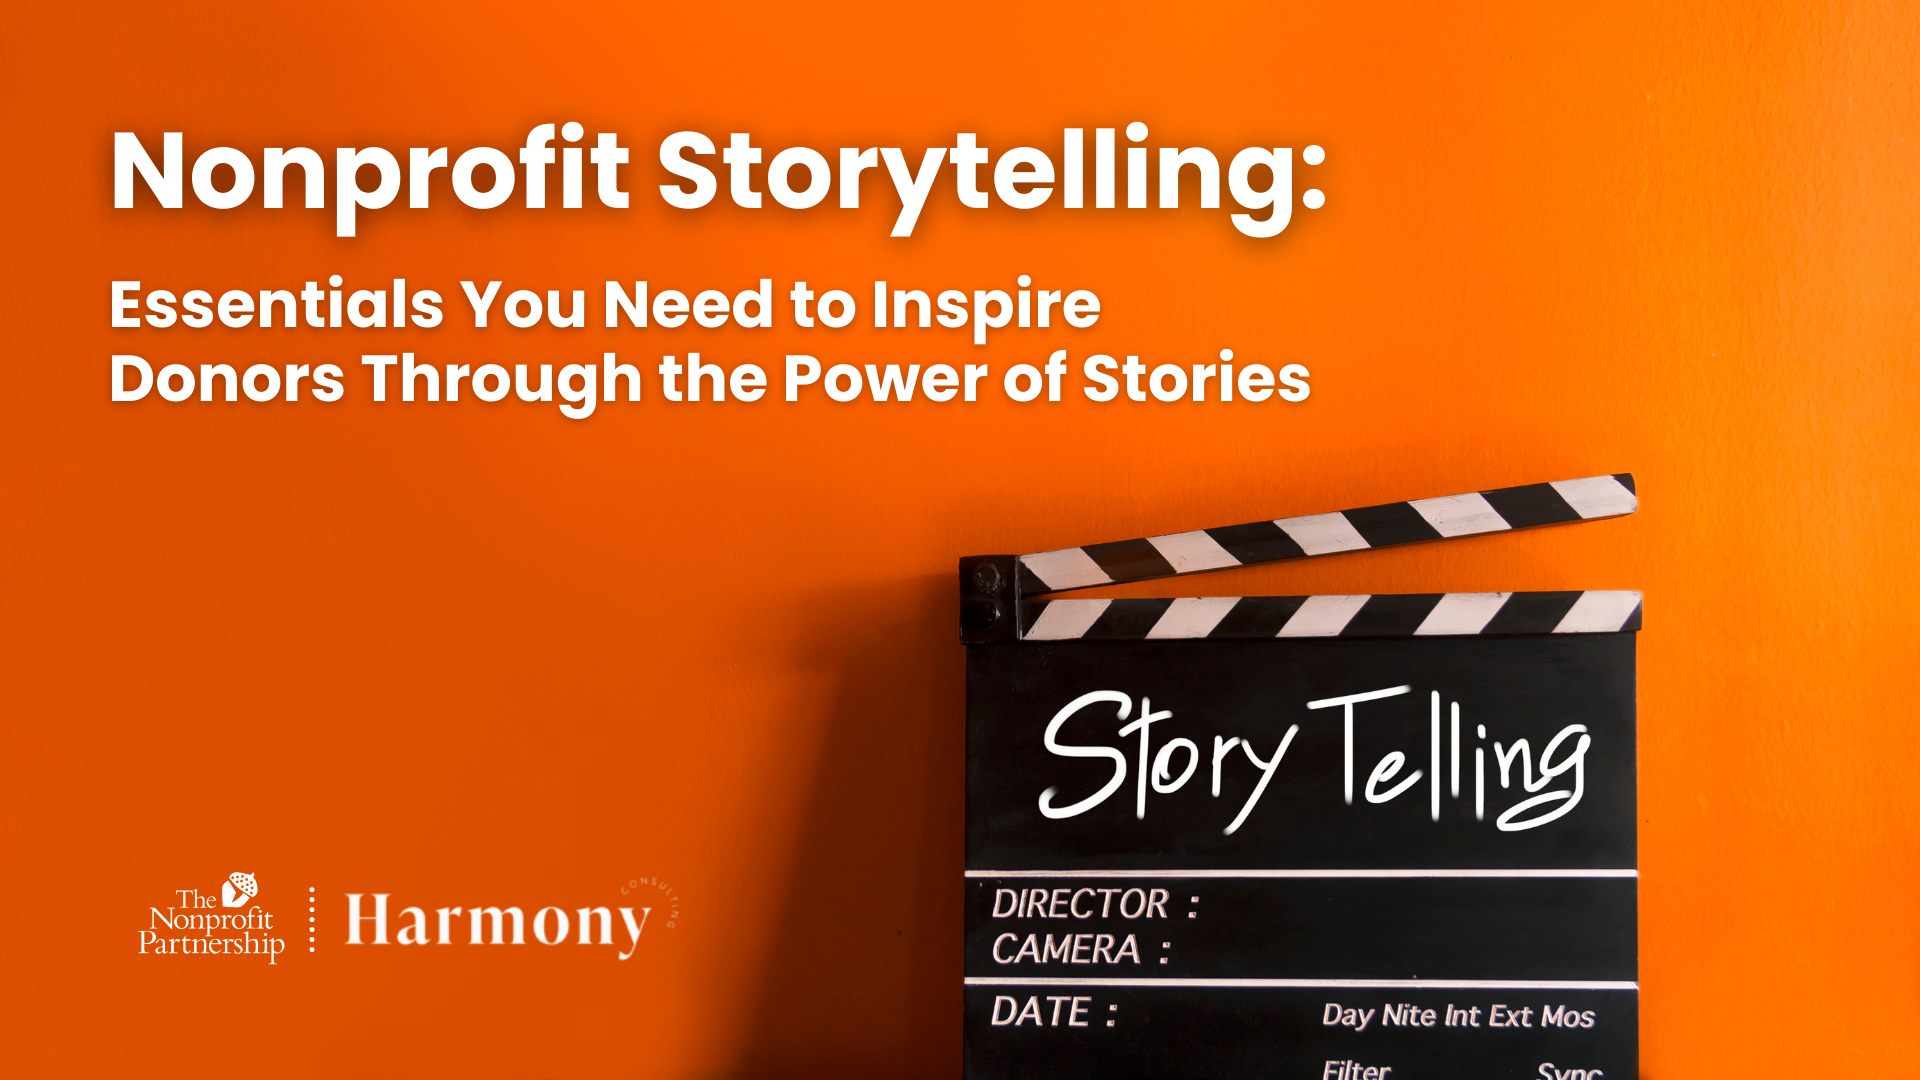 [Zoom Meeting] Nonprofit Storytelling: Essentials You Need to Inspire Donors Through the Power of Stories